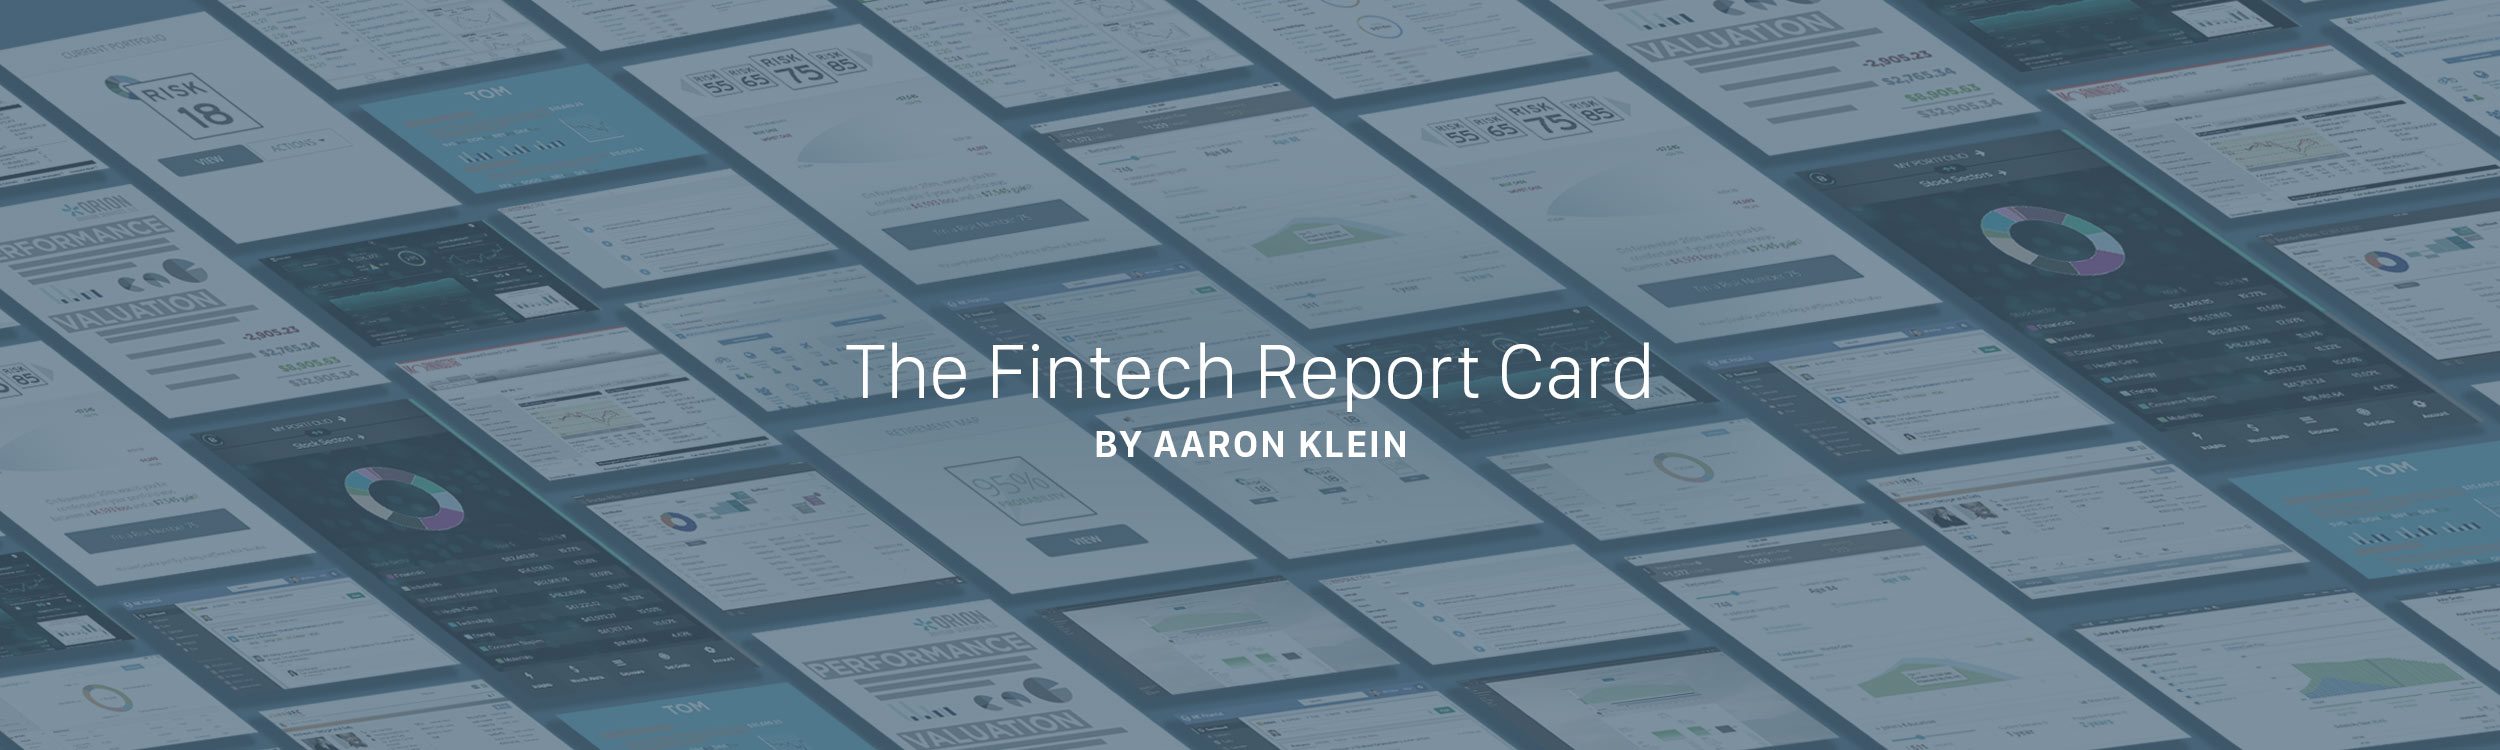 The Fintech Report Card by Aaron Klein